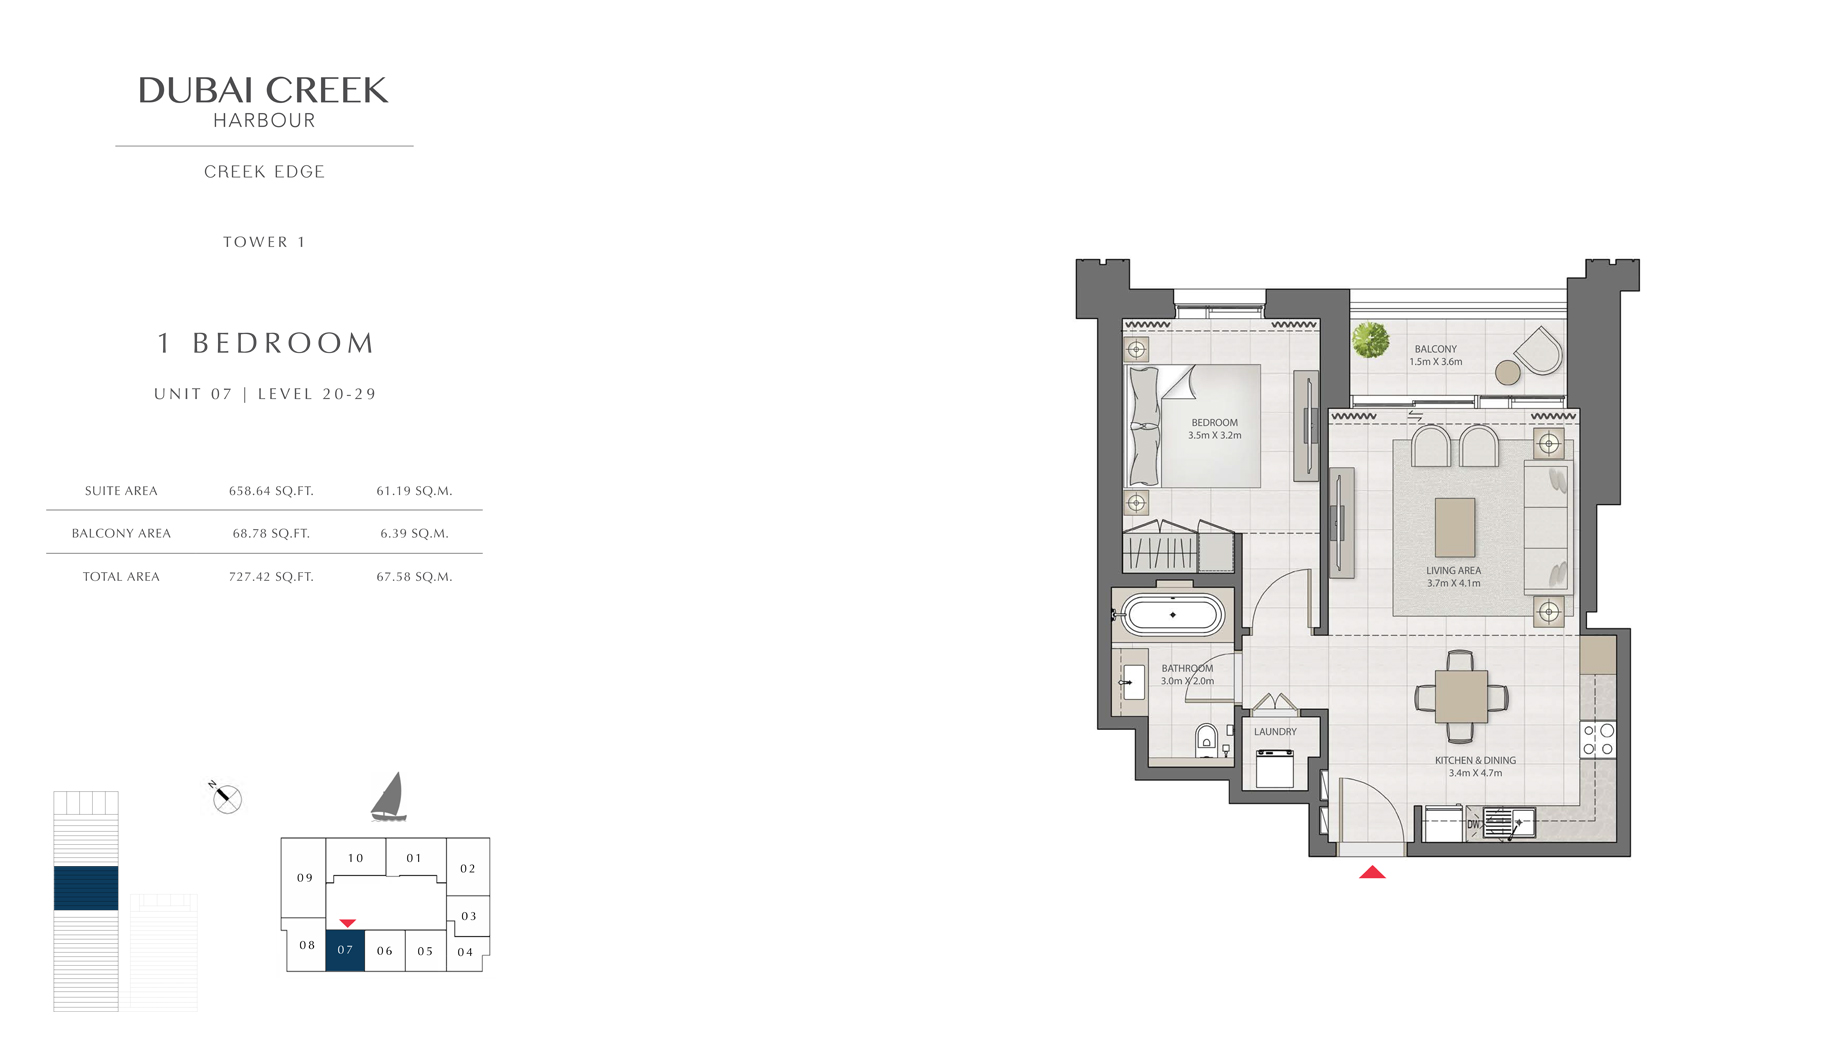 1 Bedroom Tower 1 Unit 07 Level 20-29  Size 727 sq.ft